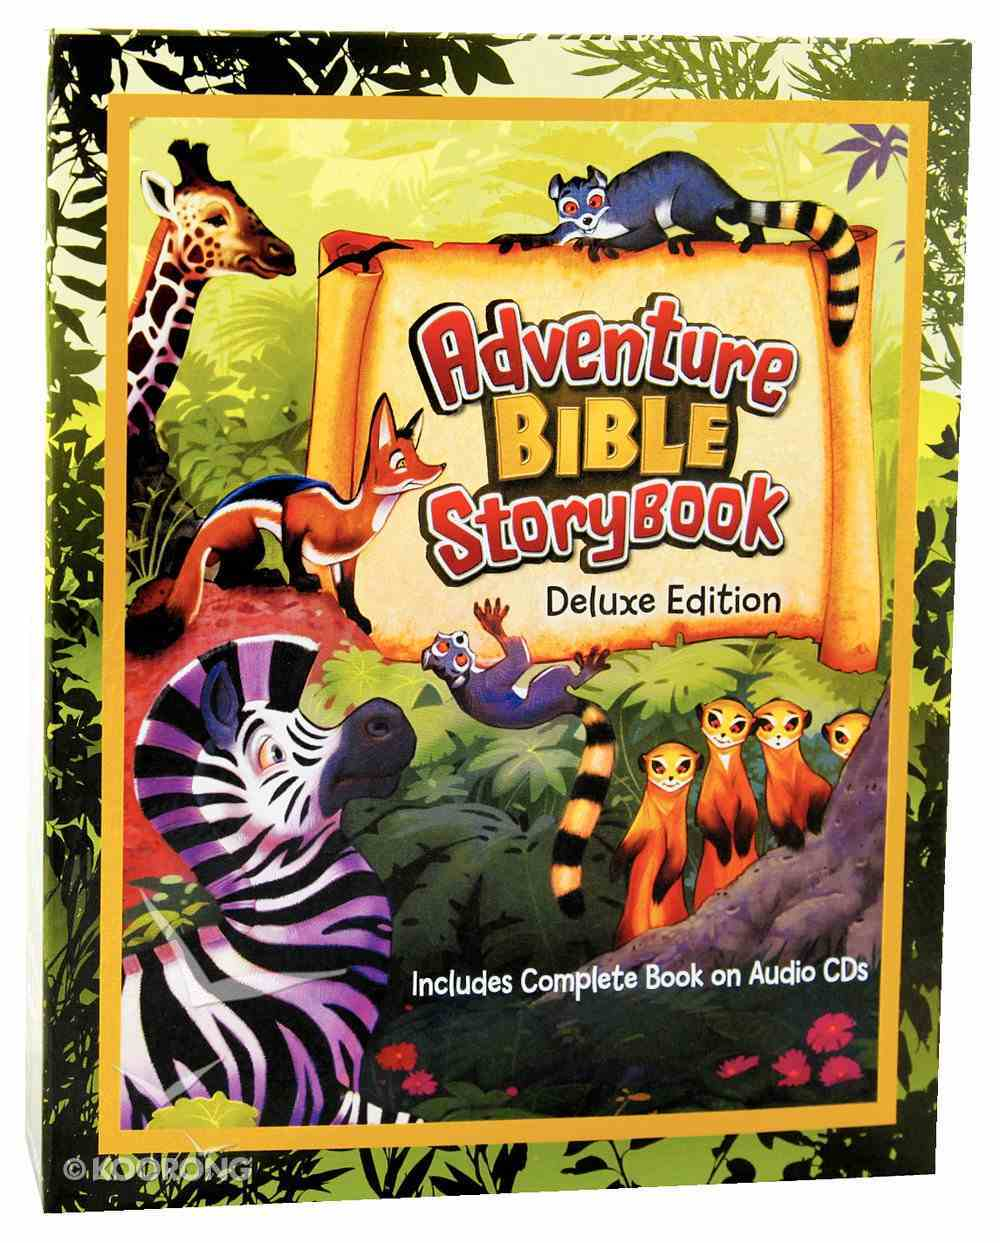 Adventure Bible Storybook Deluxe Edition (Includes 2 Audio Cd's) Hardback